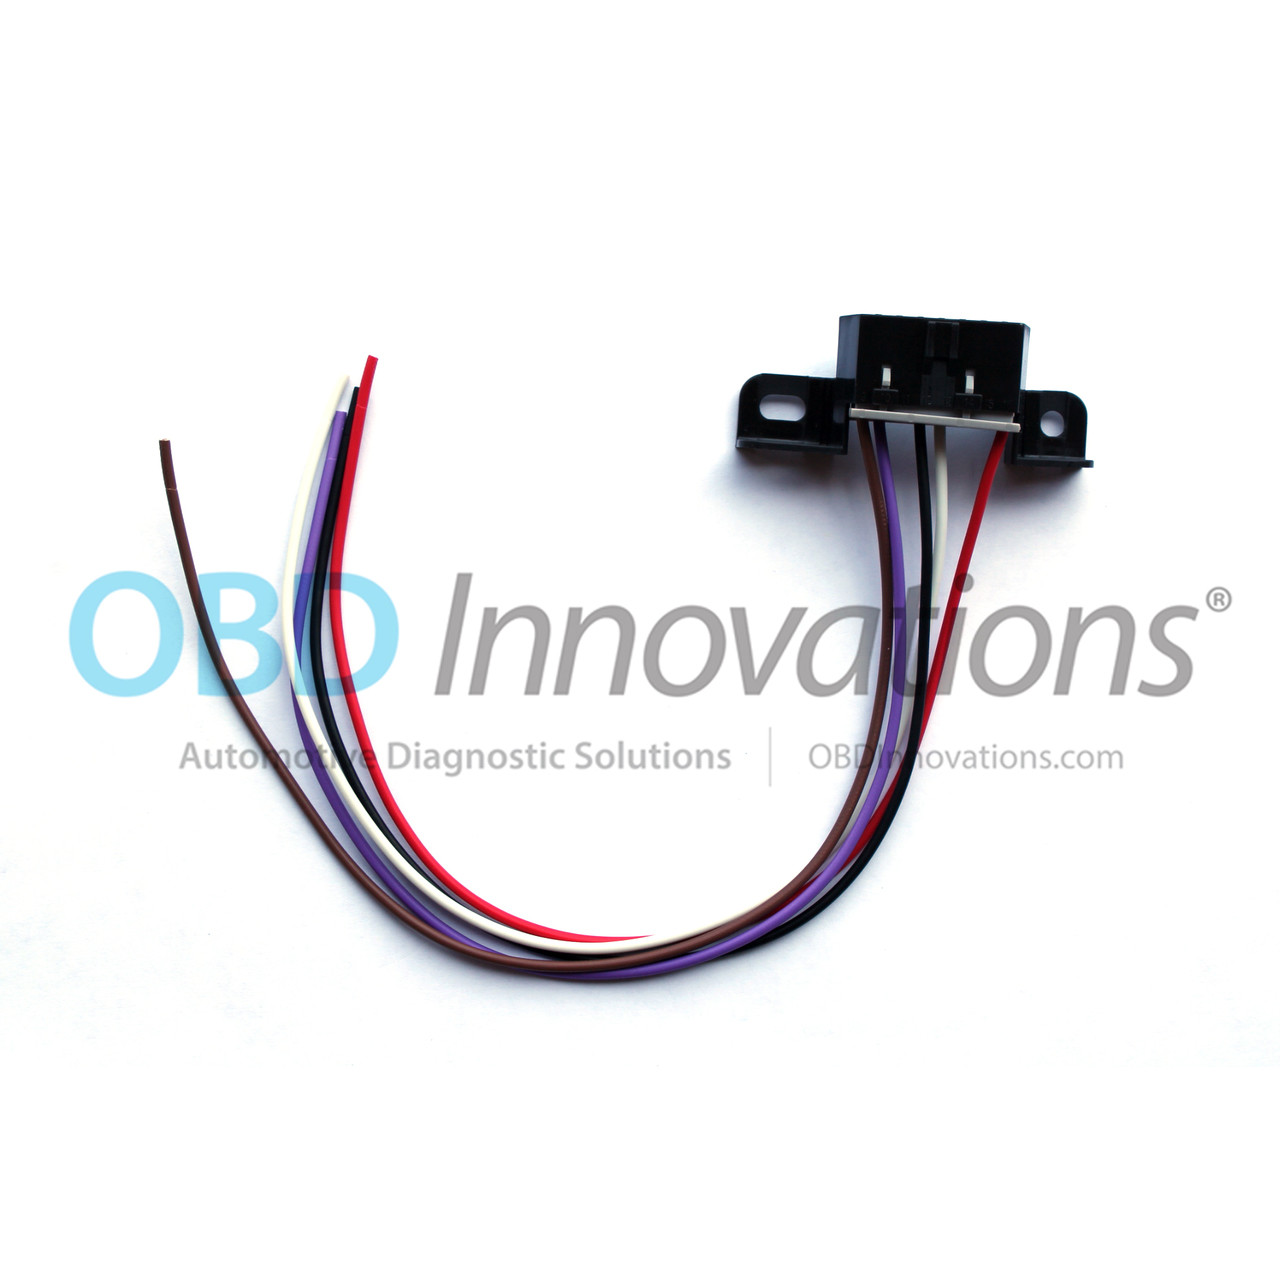 New Gm Ls1 Lt1 Obdii Obd2 Wiring Harness Connector Pigtail 96 Camaro